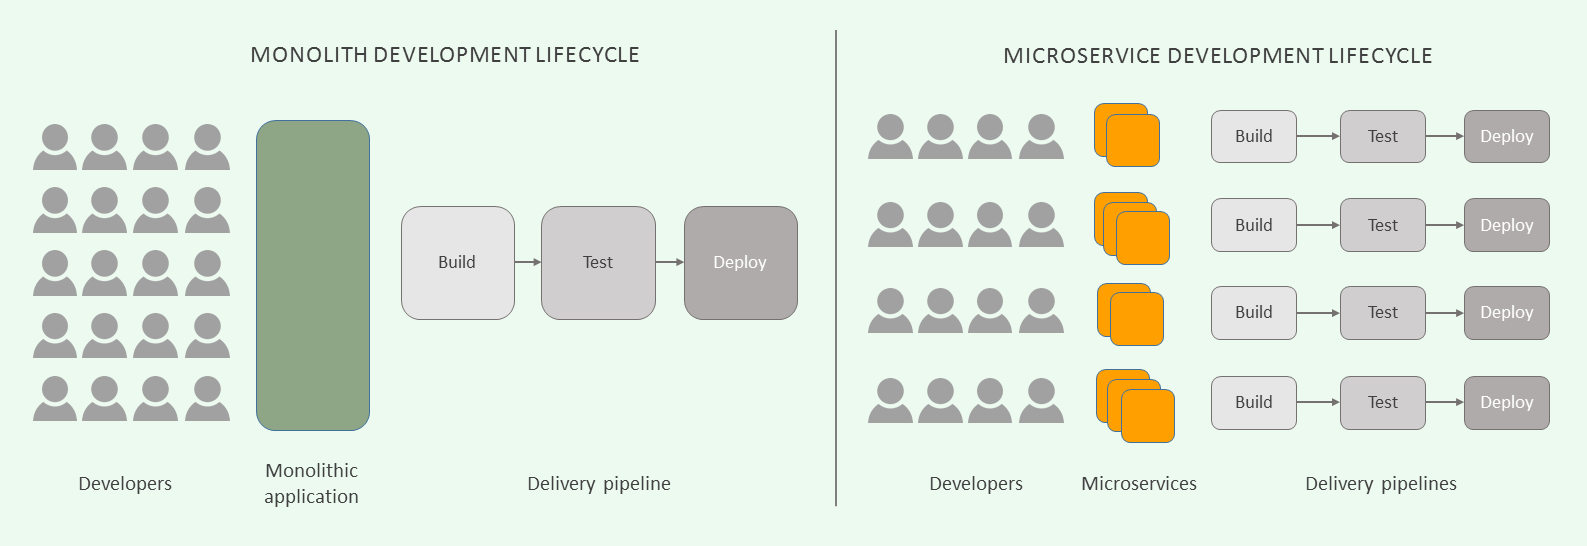 microservices-development-lifecycle-1